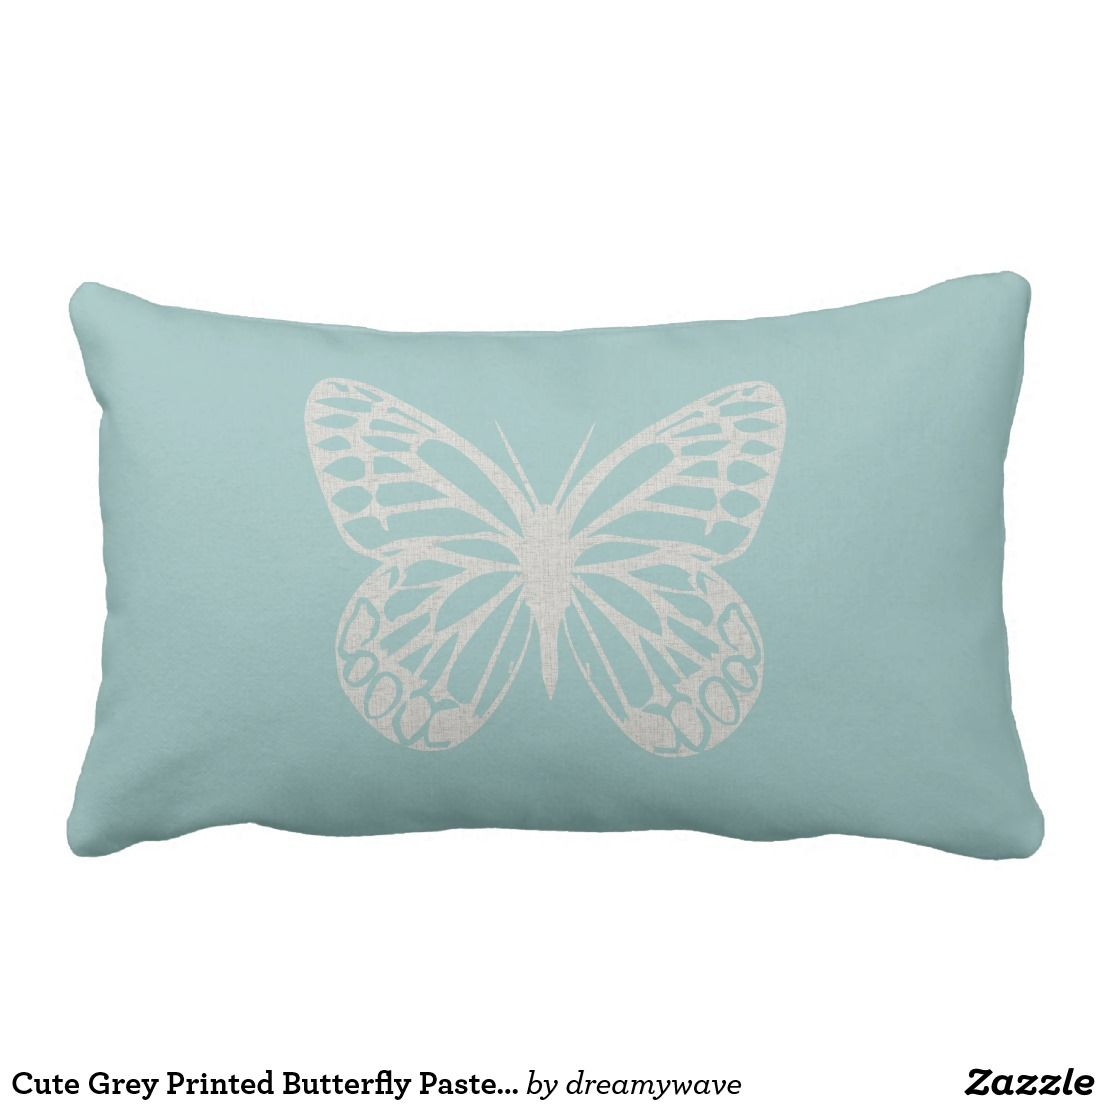 Cute Grey Printed Butterfly Pastel Mint Pillow